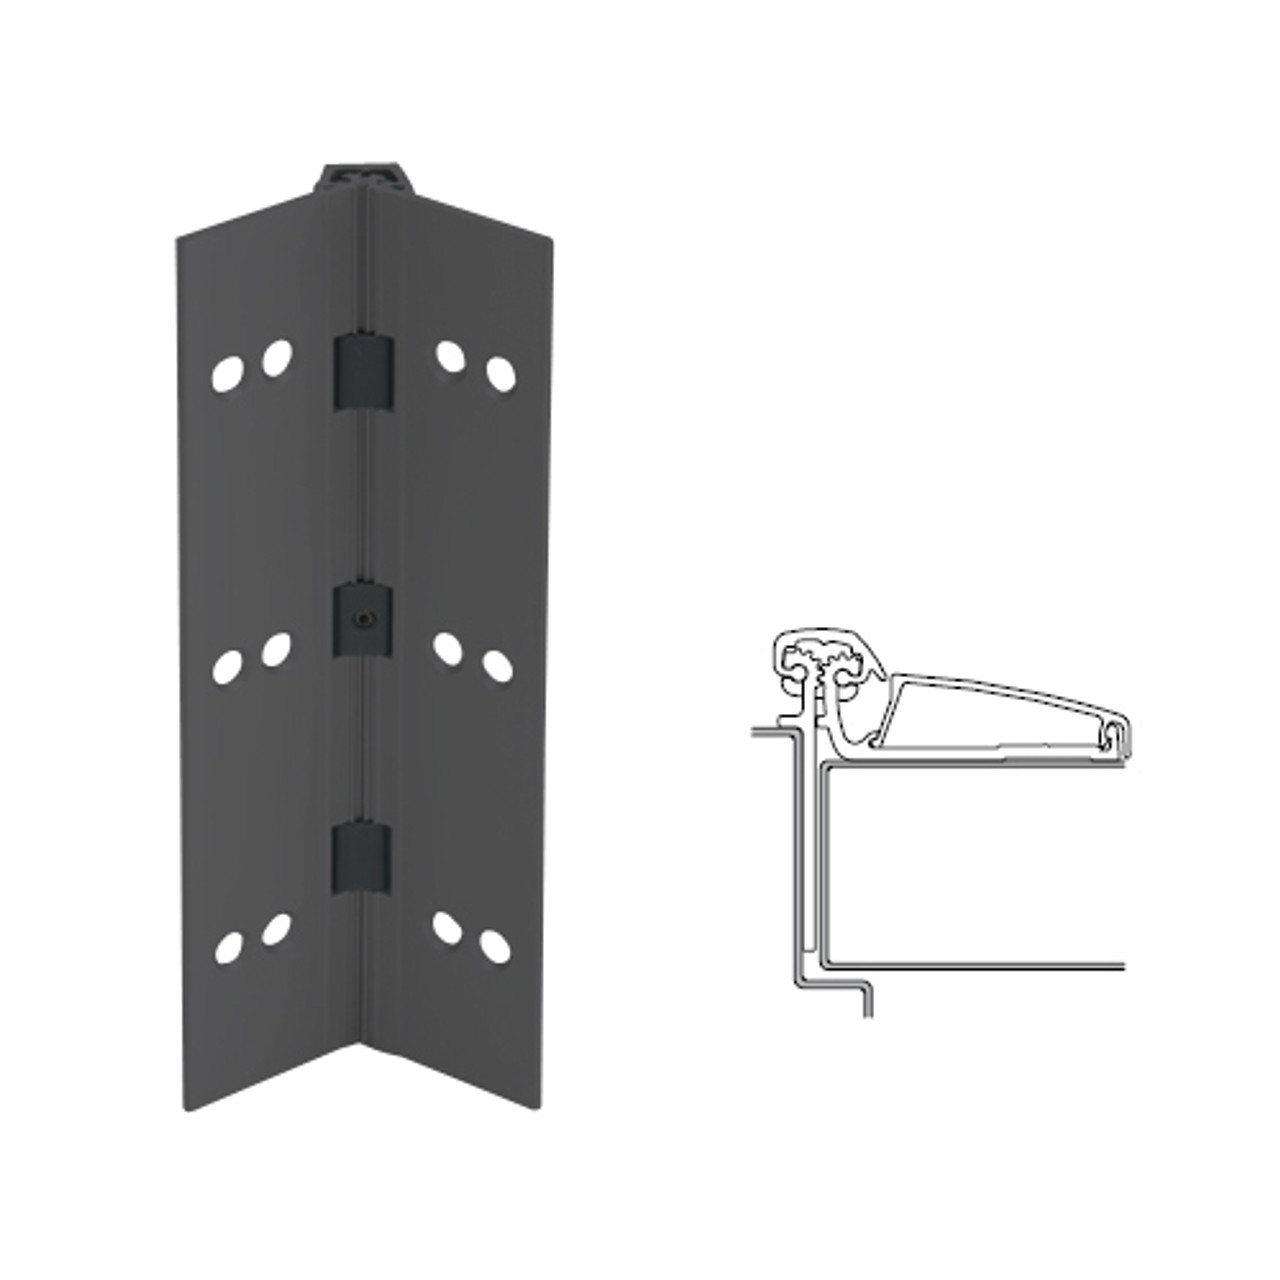 046XY-315AN-85-SECWDWD IVES Adjustable Half Surface Continuous Geared Hinges with Security Screws - Hex Pin Drive in Anodized Black